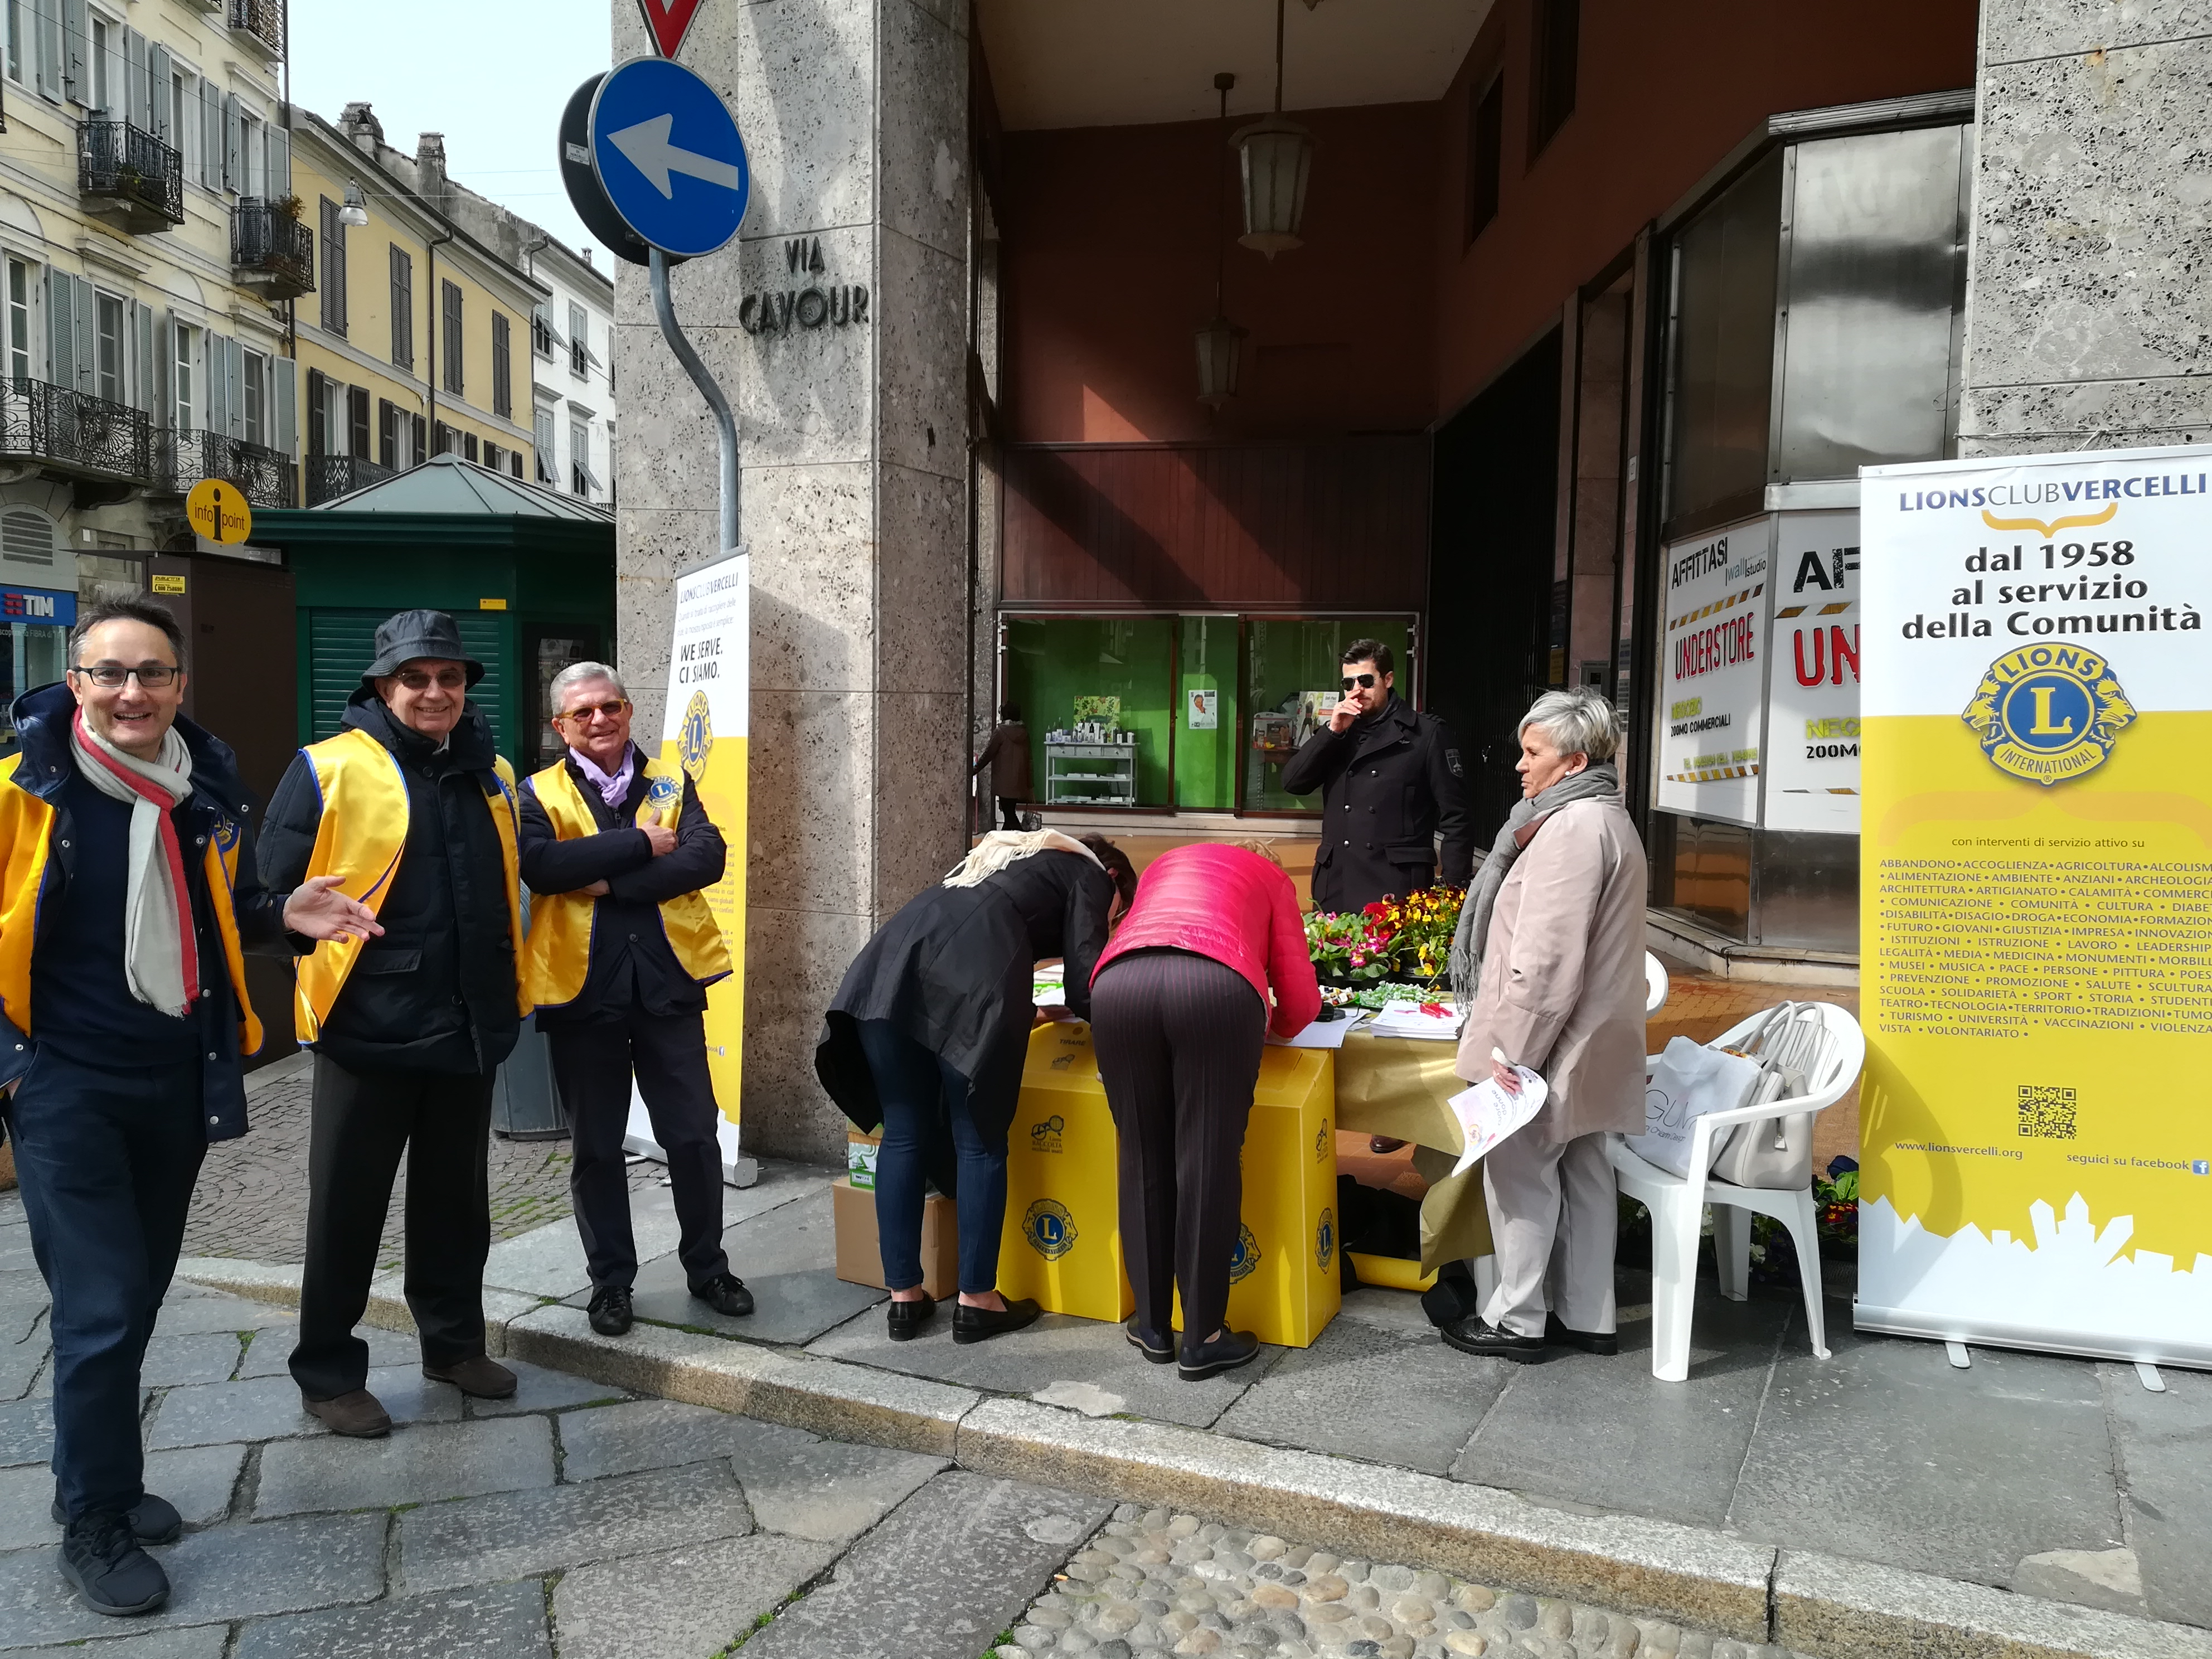 Lions day Vercelli 2018